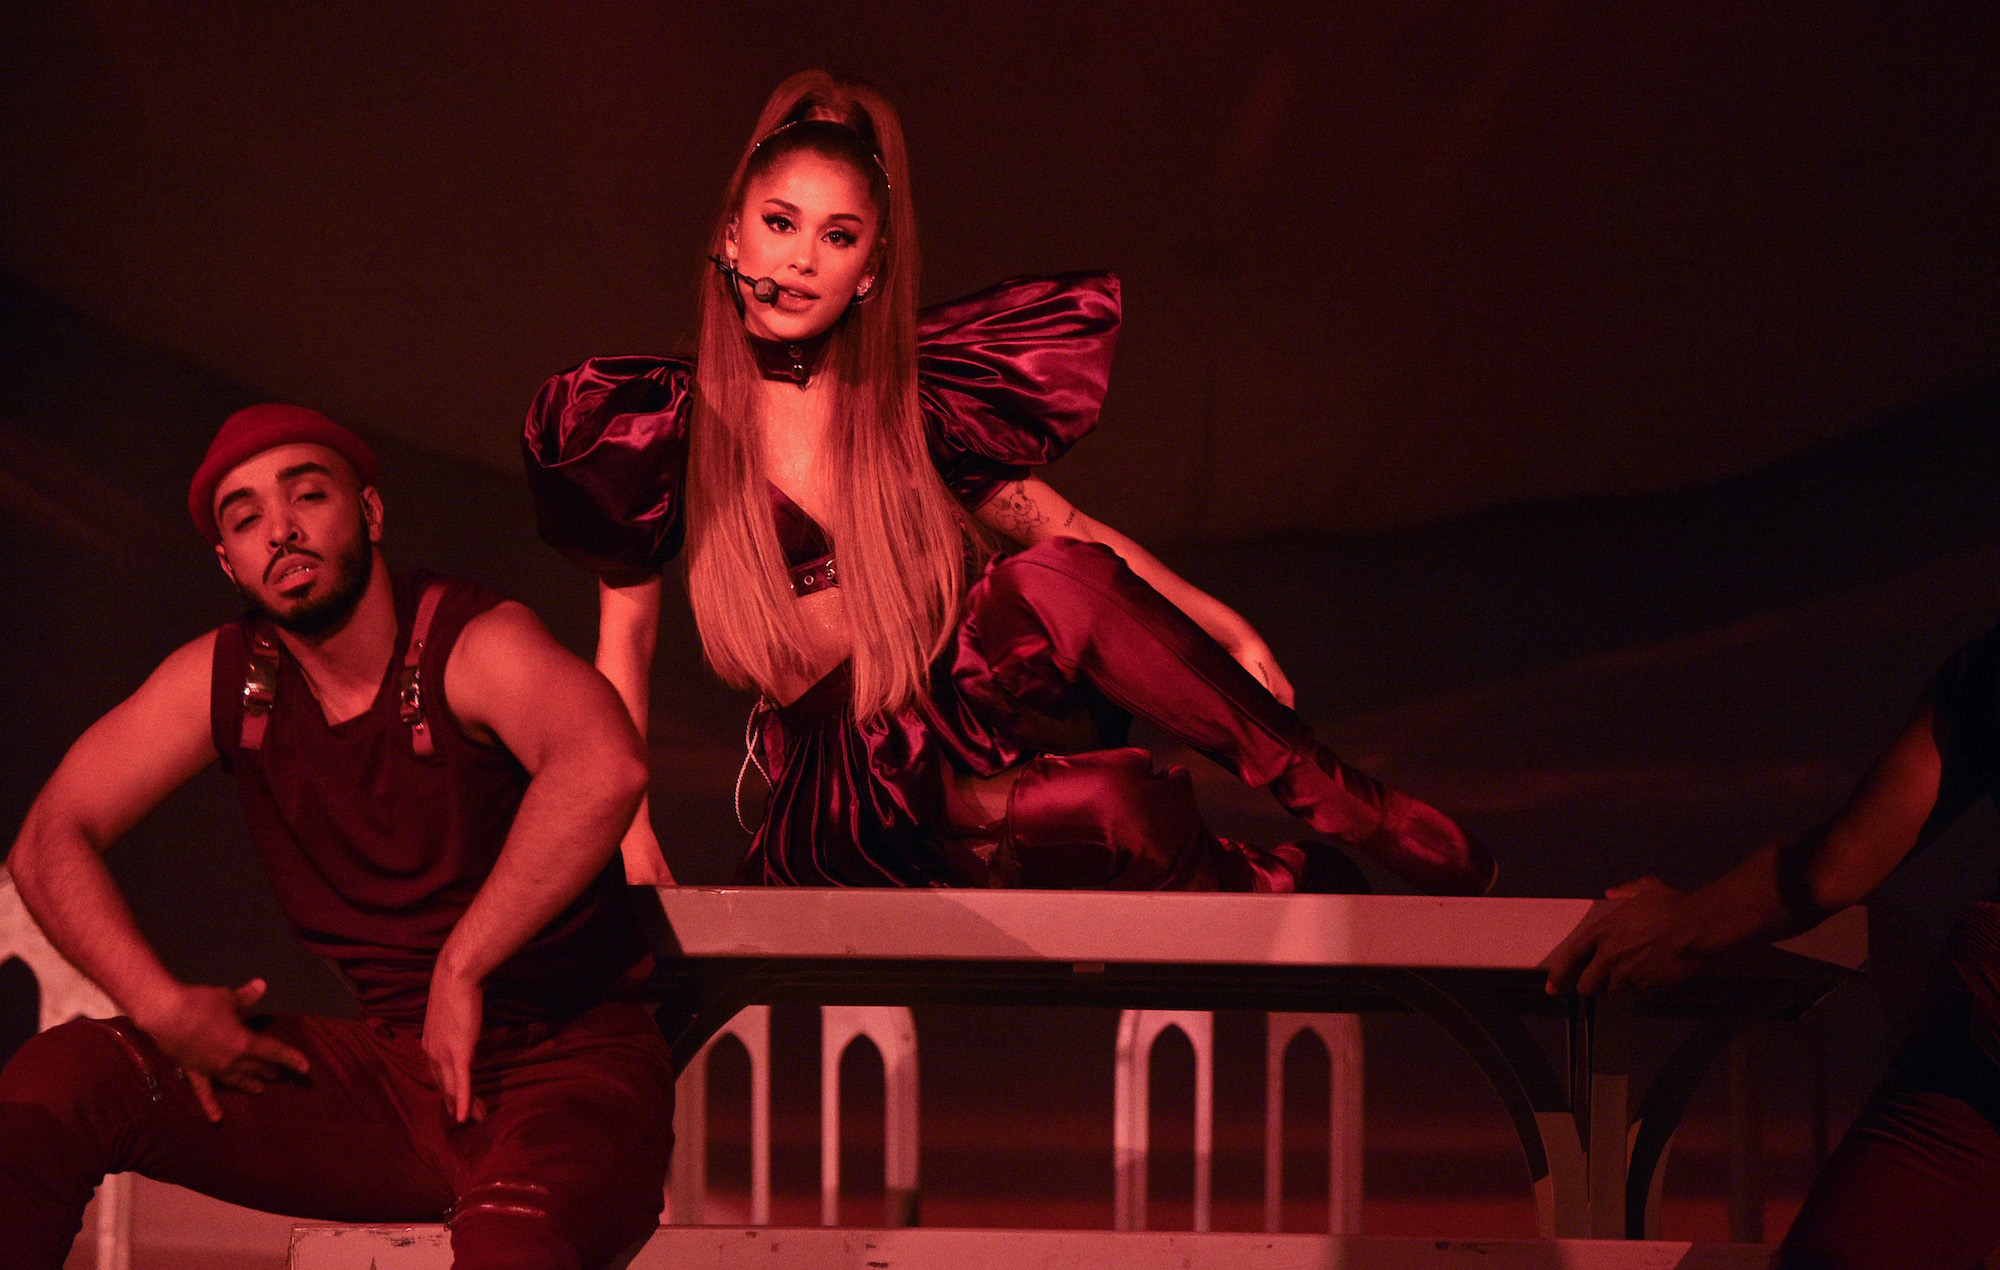 Ariana Grande No Longer Facing Lawsuit Over God Is A Woman Video